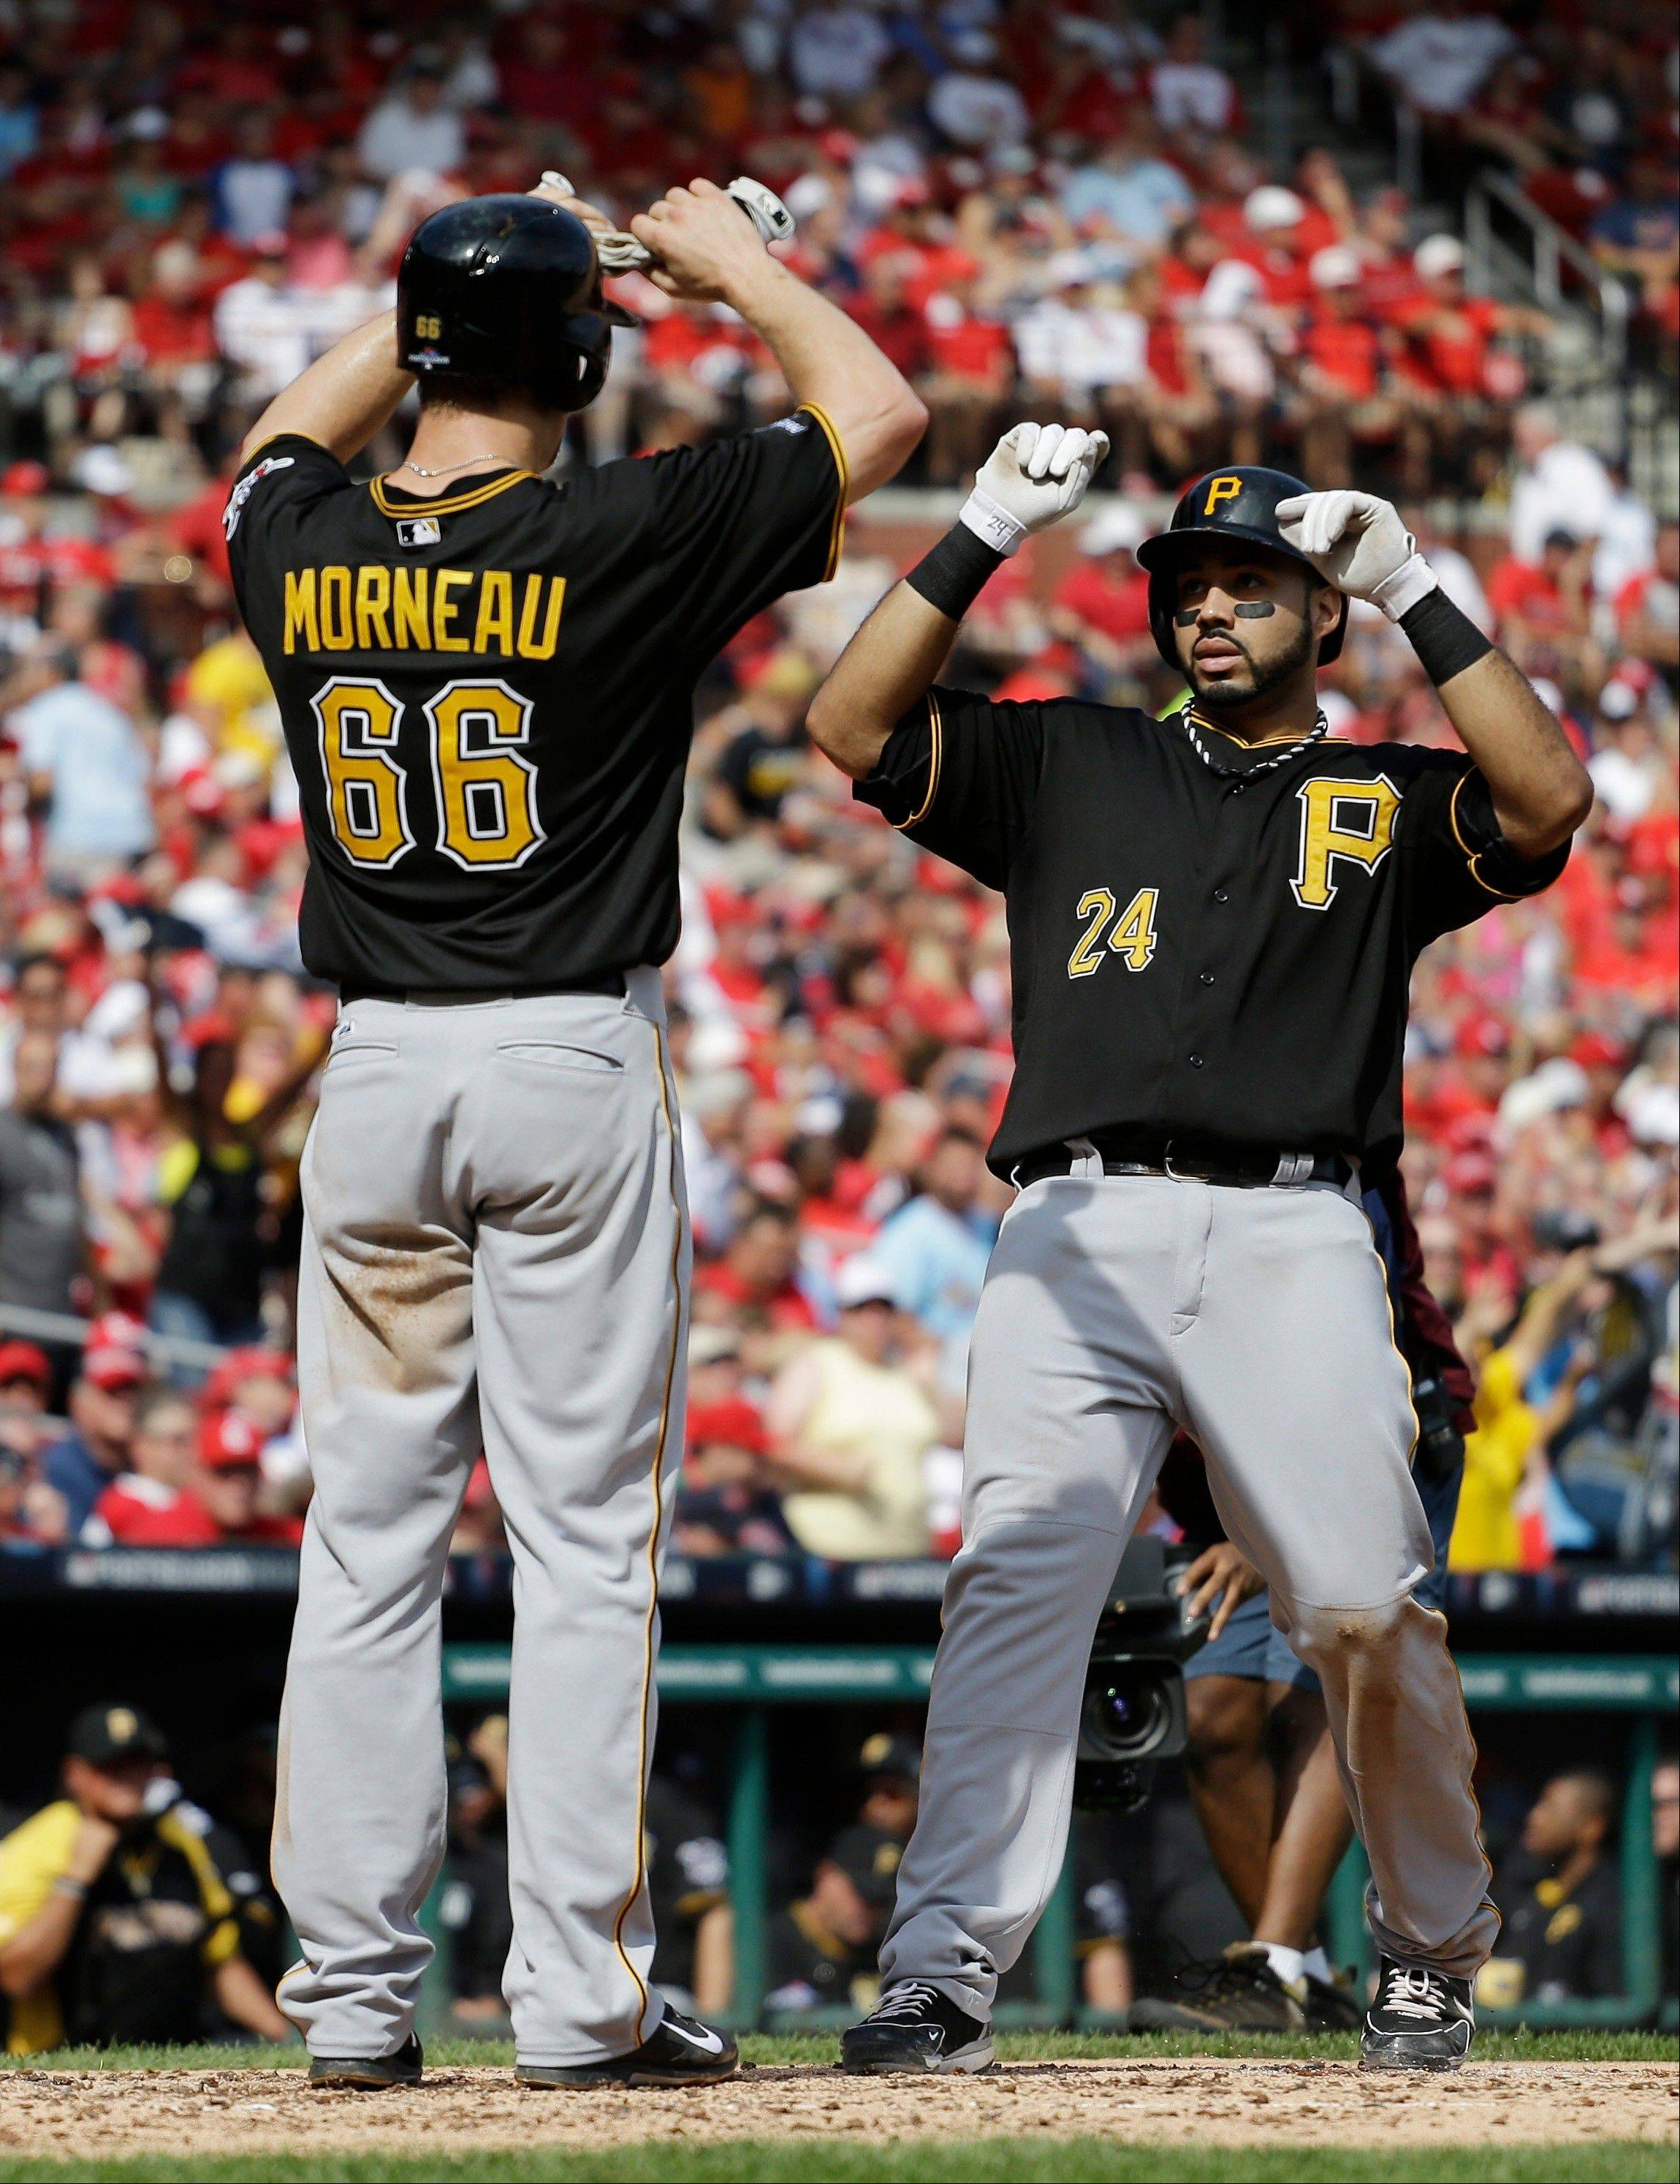 Pittsburgh�s Pedro Alvarez (24) is greeted by Justin Morneau (66) at home plate after Alvarez hit a two-run home run against the St. Louis Cardinals in the third inning of Game 2 of the National League division series on Friday in St. Louis. Morneau scored on the homer.